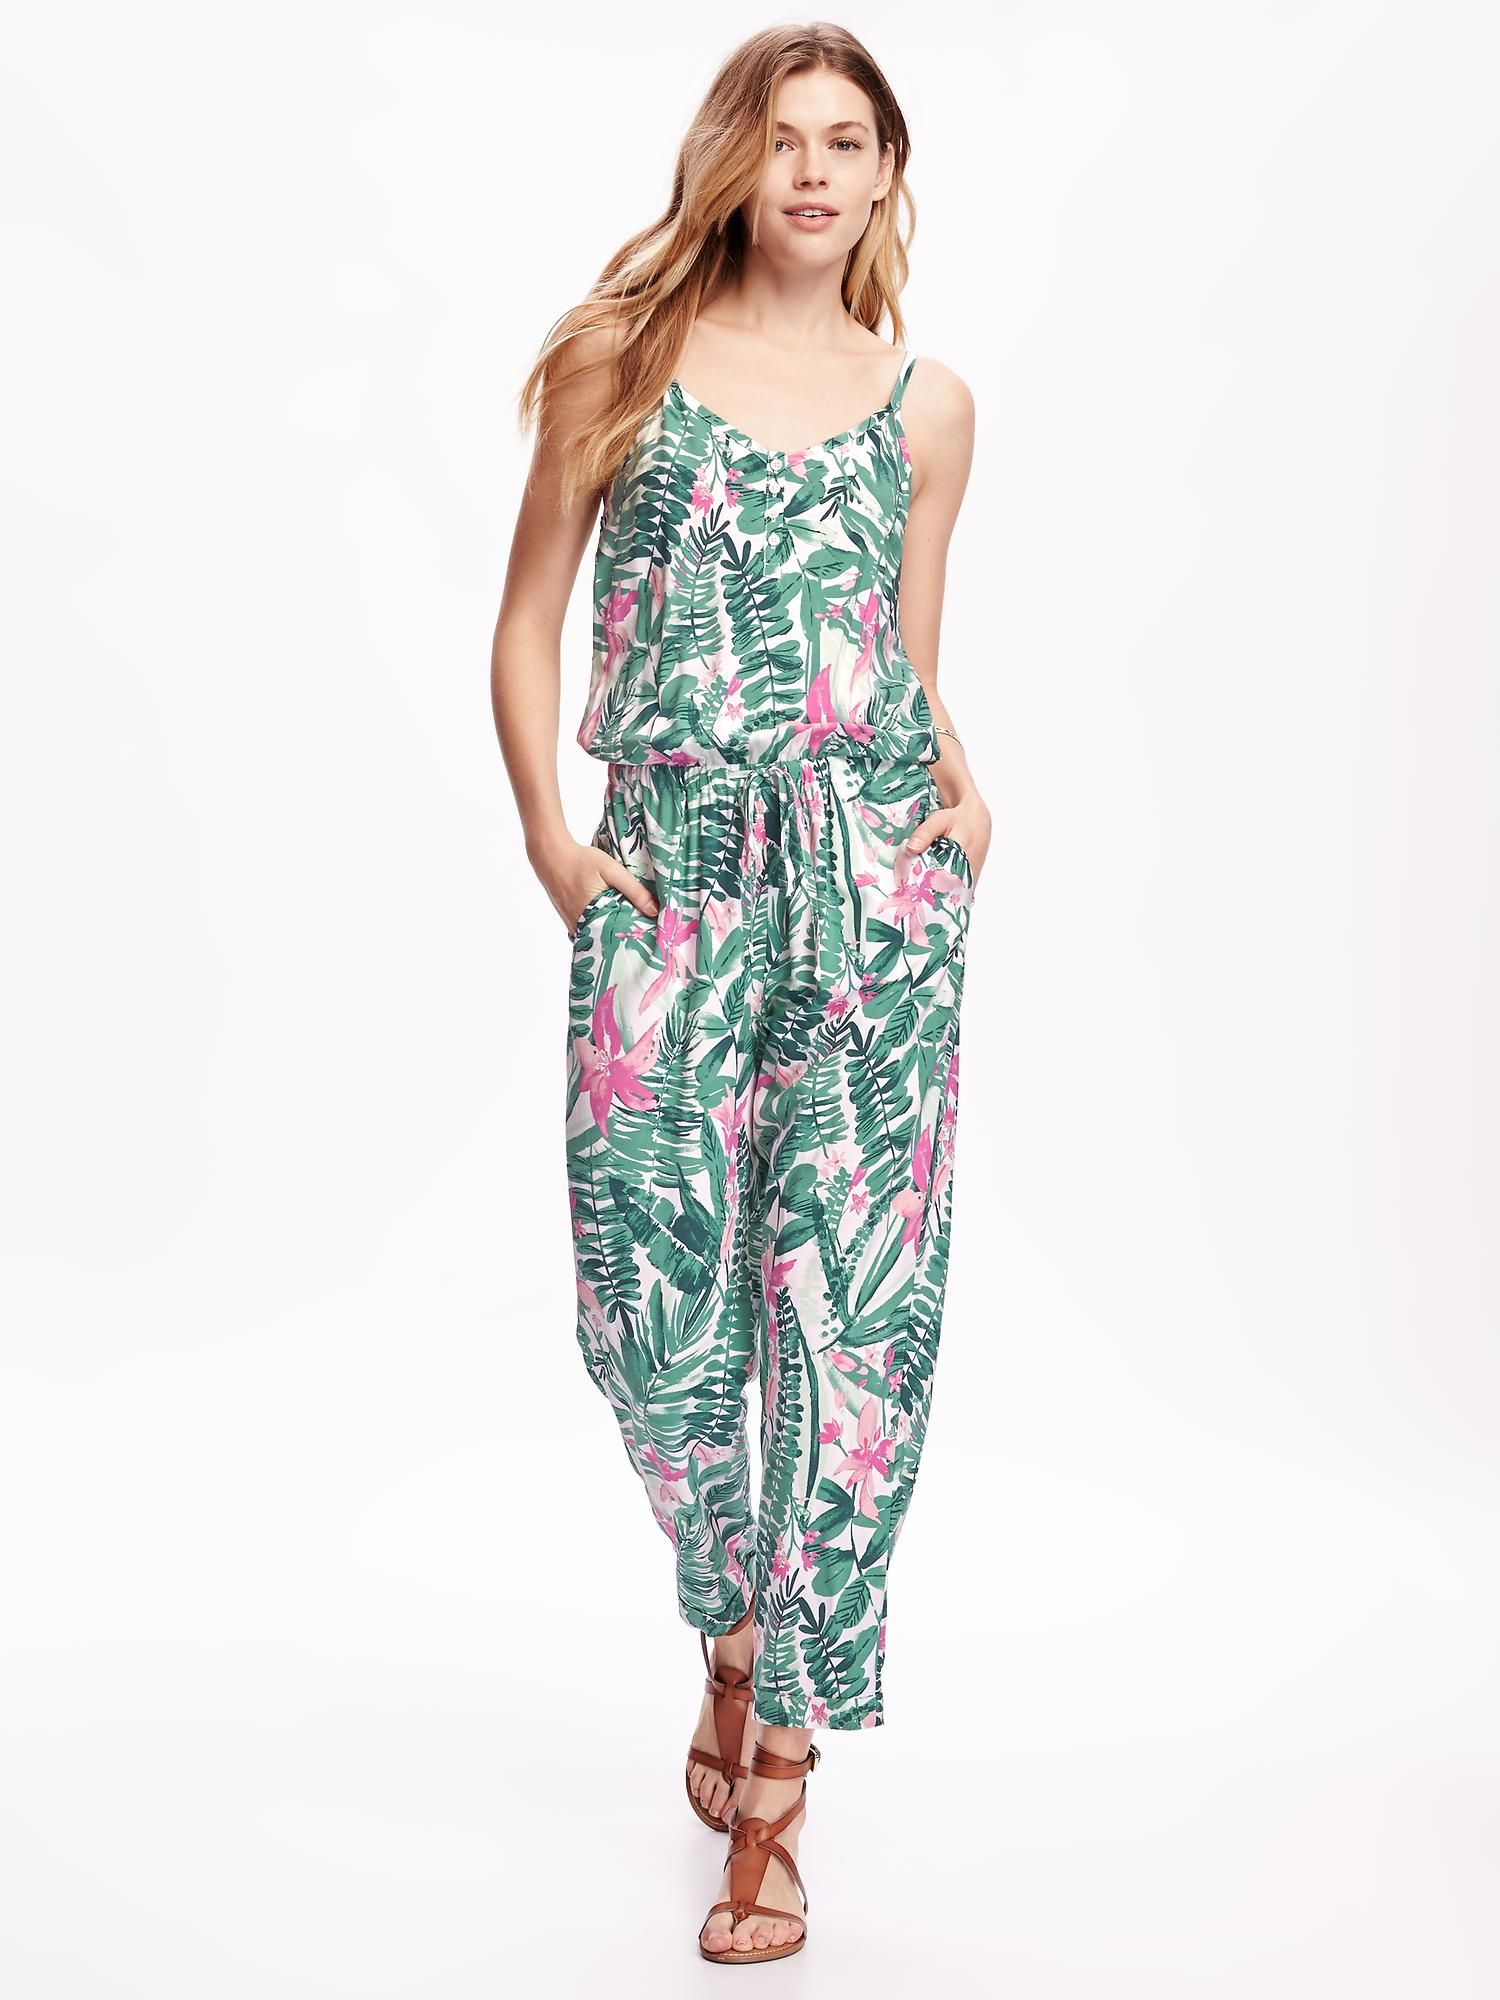 7a50859dca6b 5 Summer Trends That ll Instantly Brighten Your Mood